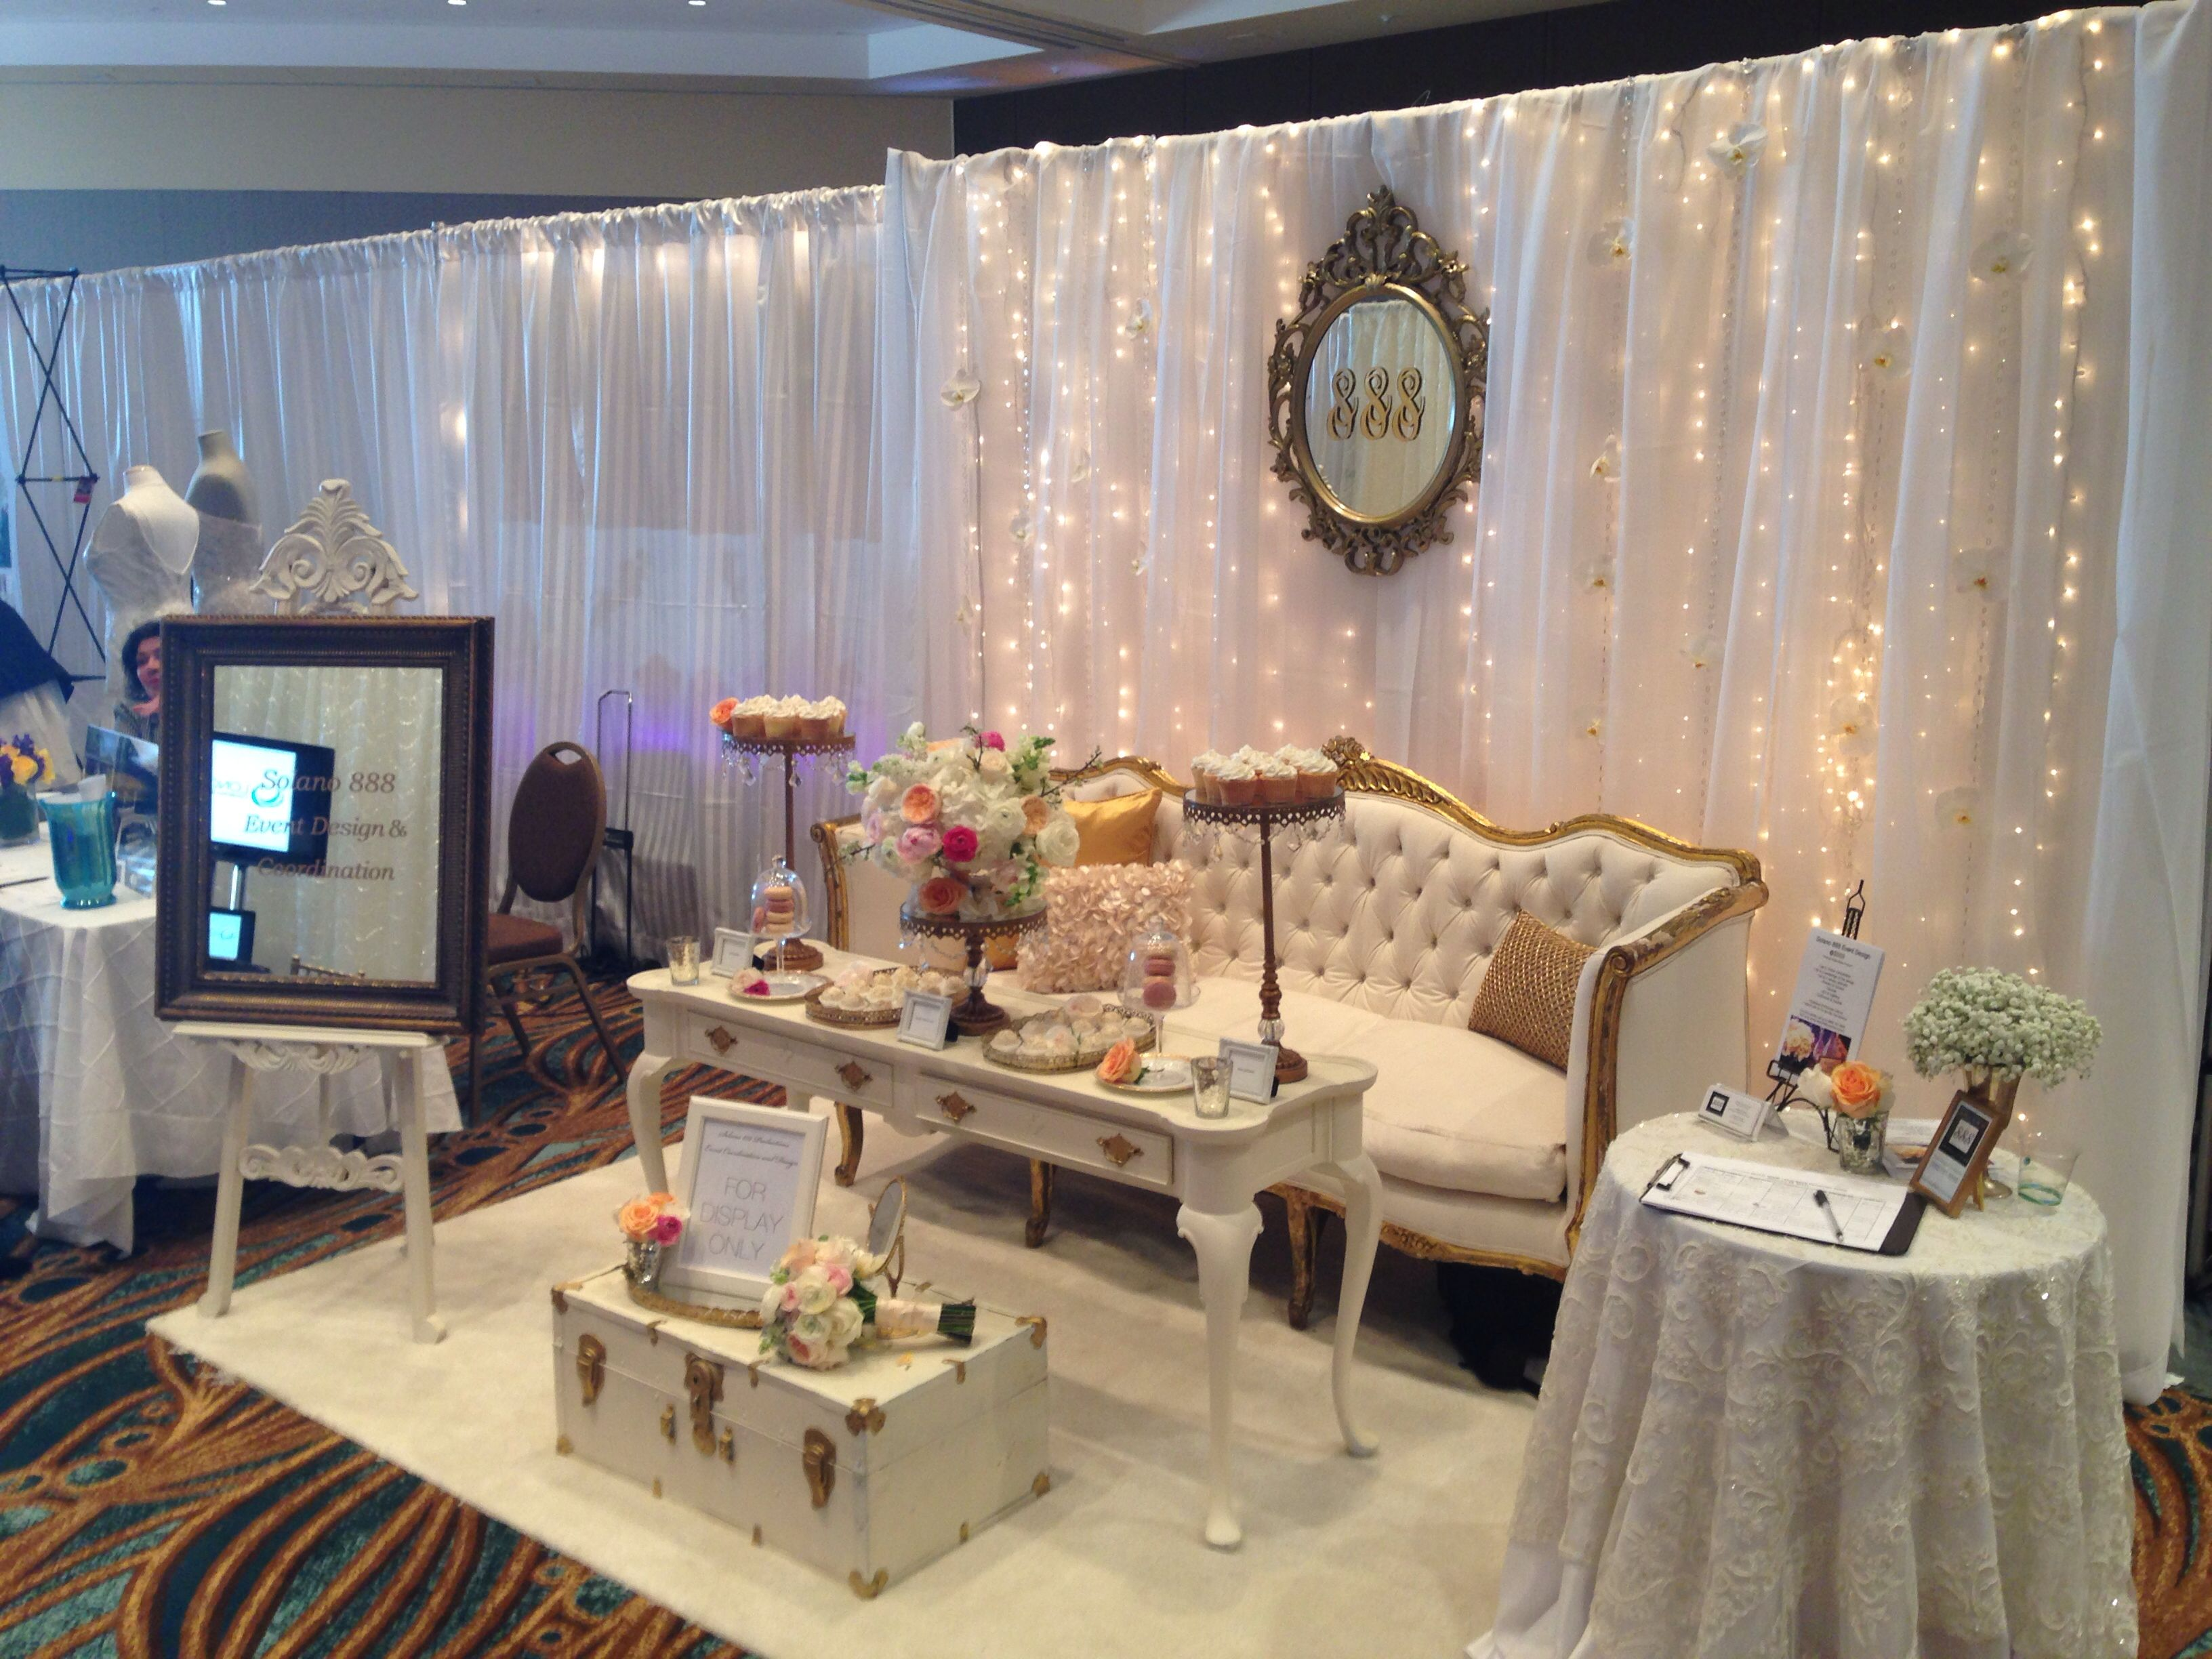 Bridal Expo Stands : Bridal show booth fairytale wedding pinterest